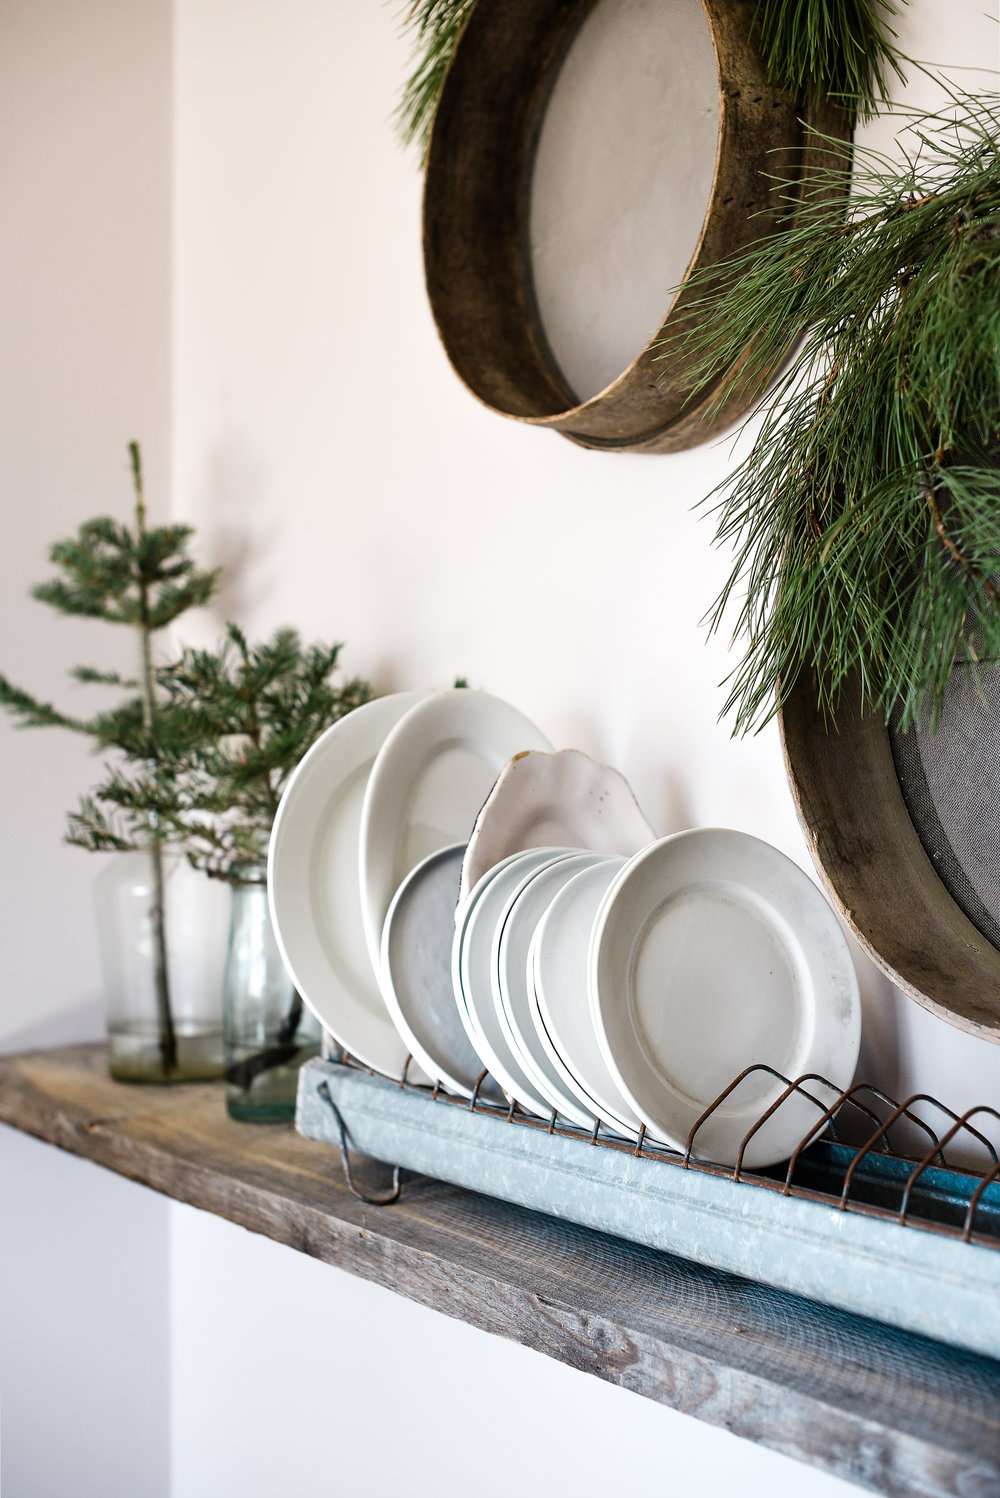 Farmhouse Christmas ironstone flea market style | boxwoodavenue.com #christmasdecor #farmhousechristmas